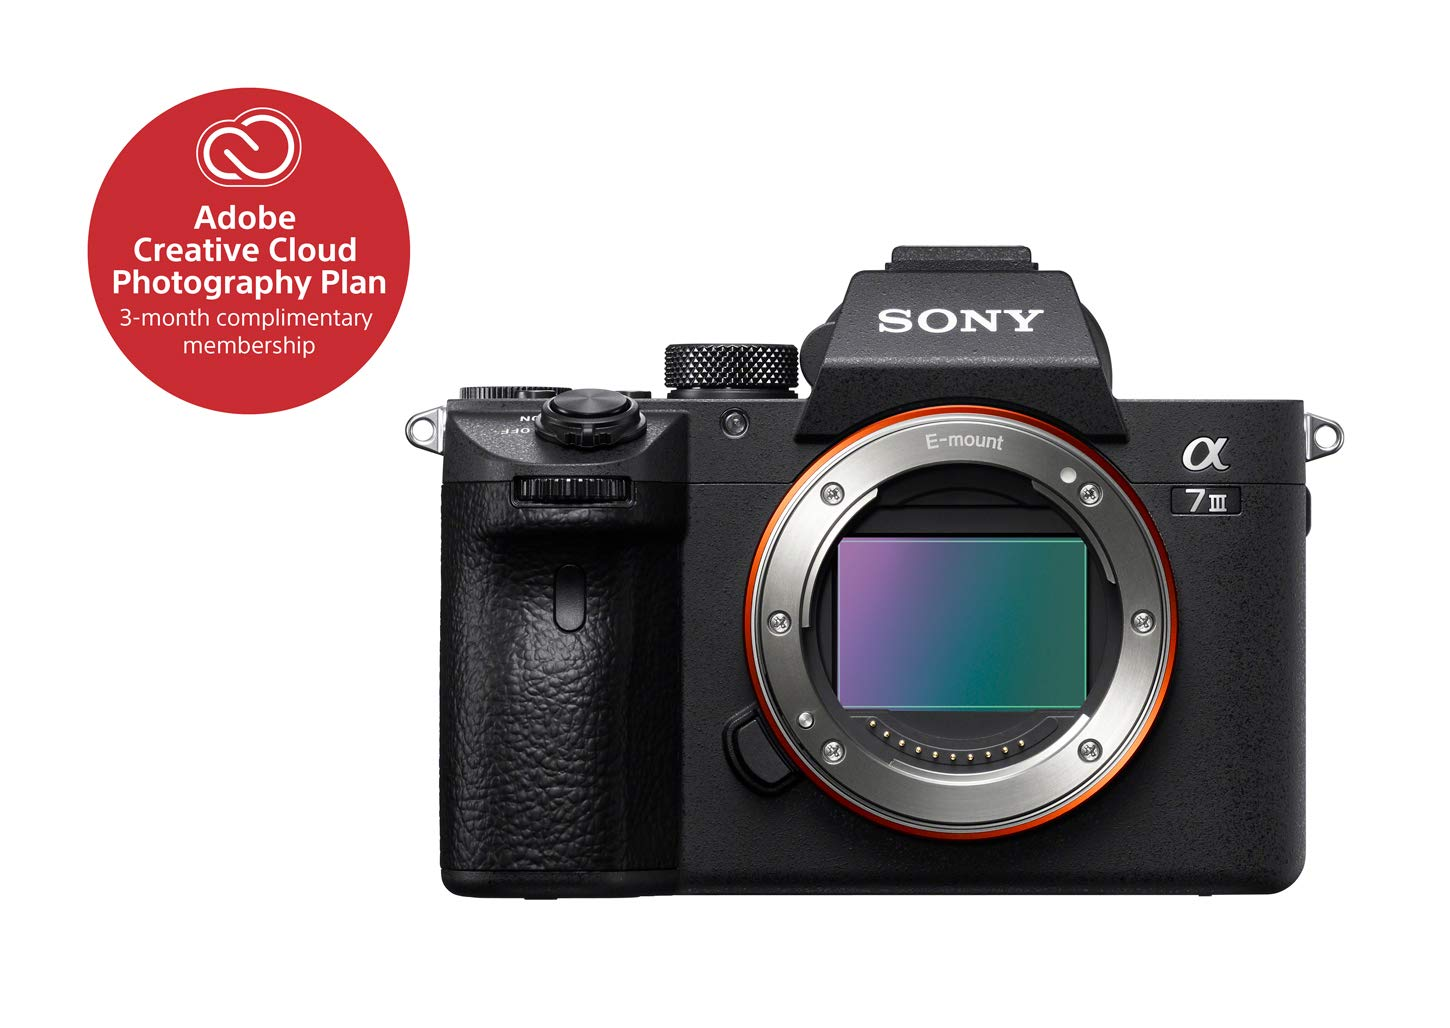 Sony a7 III Full-Frame Mirrorless Interchangeable-Lens Camera with 28-70mm Lens Optical - 61W4vnQNQUL - Sony a7 III Full-frame Mirrorless Interchangeable-Lens Camera with 28-70mm Lens Optical